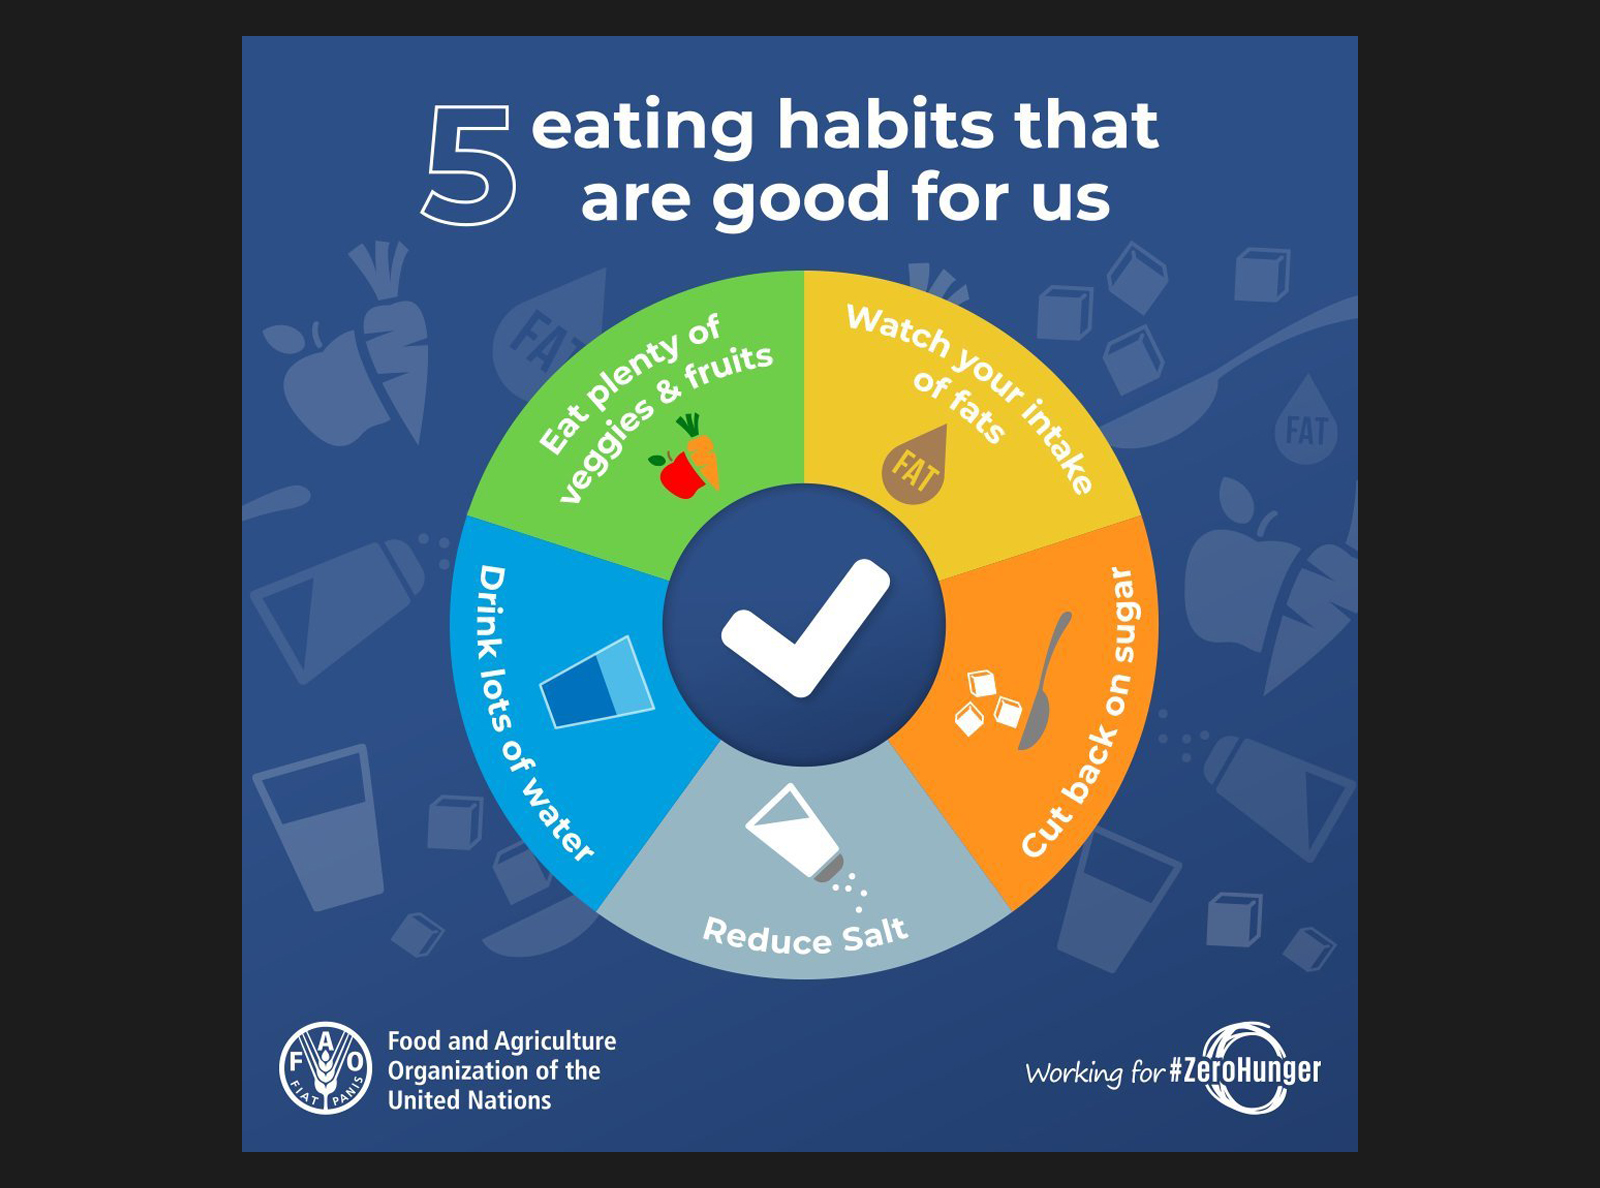 5 eating habits that are good for us